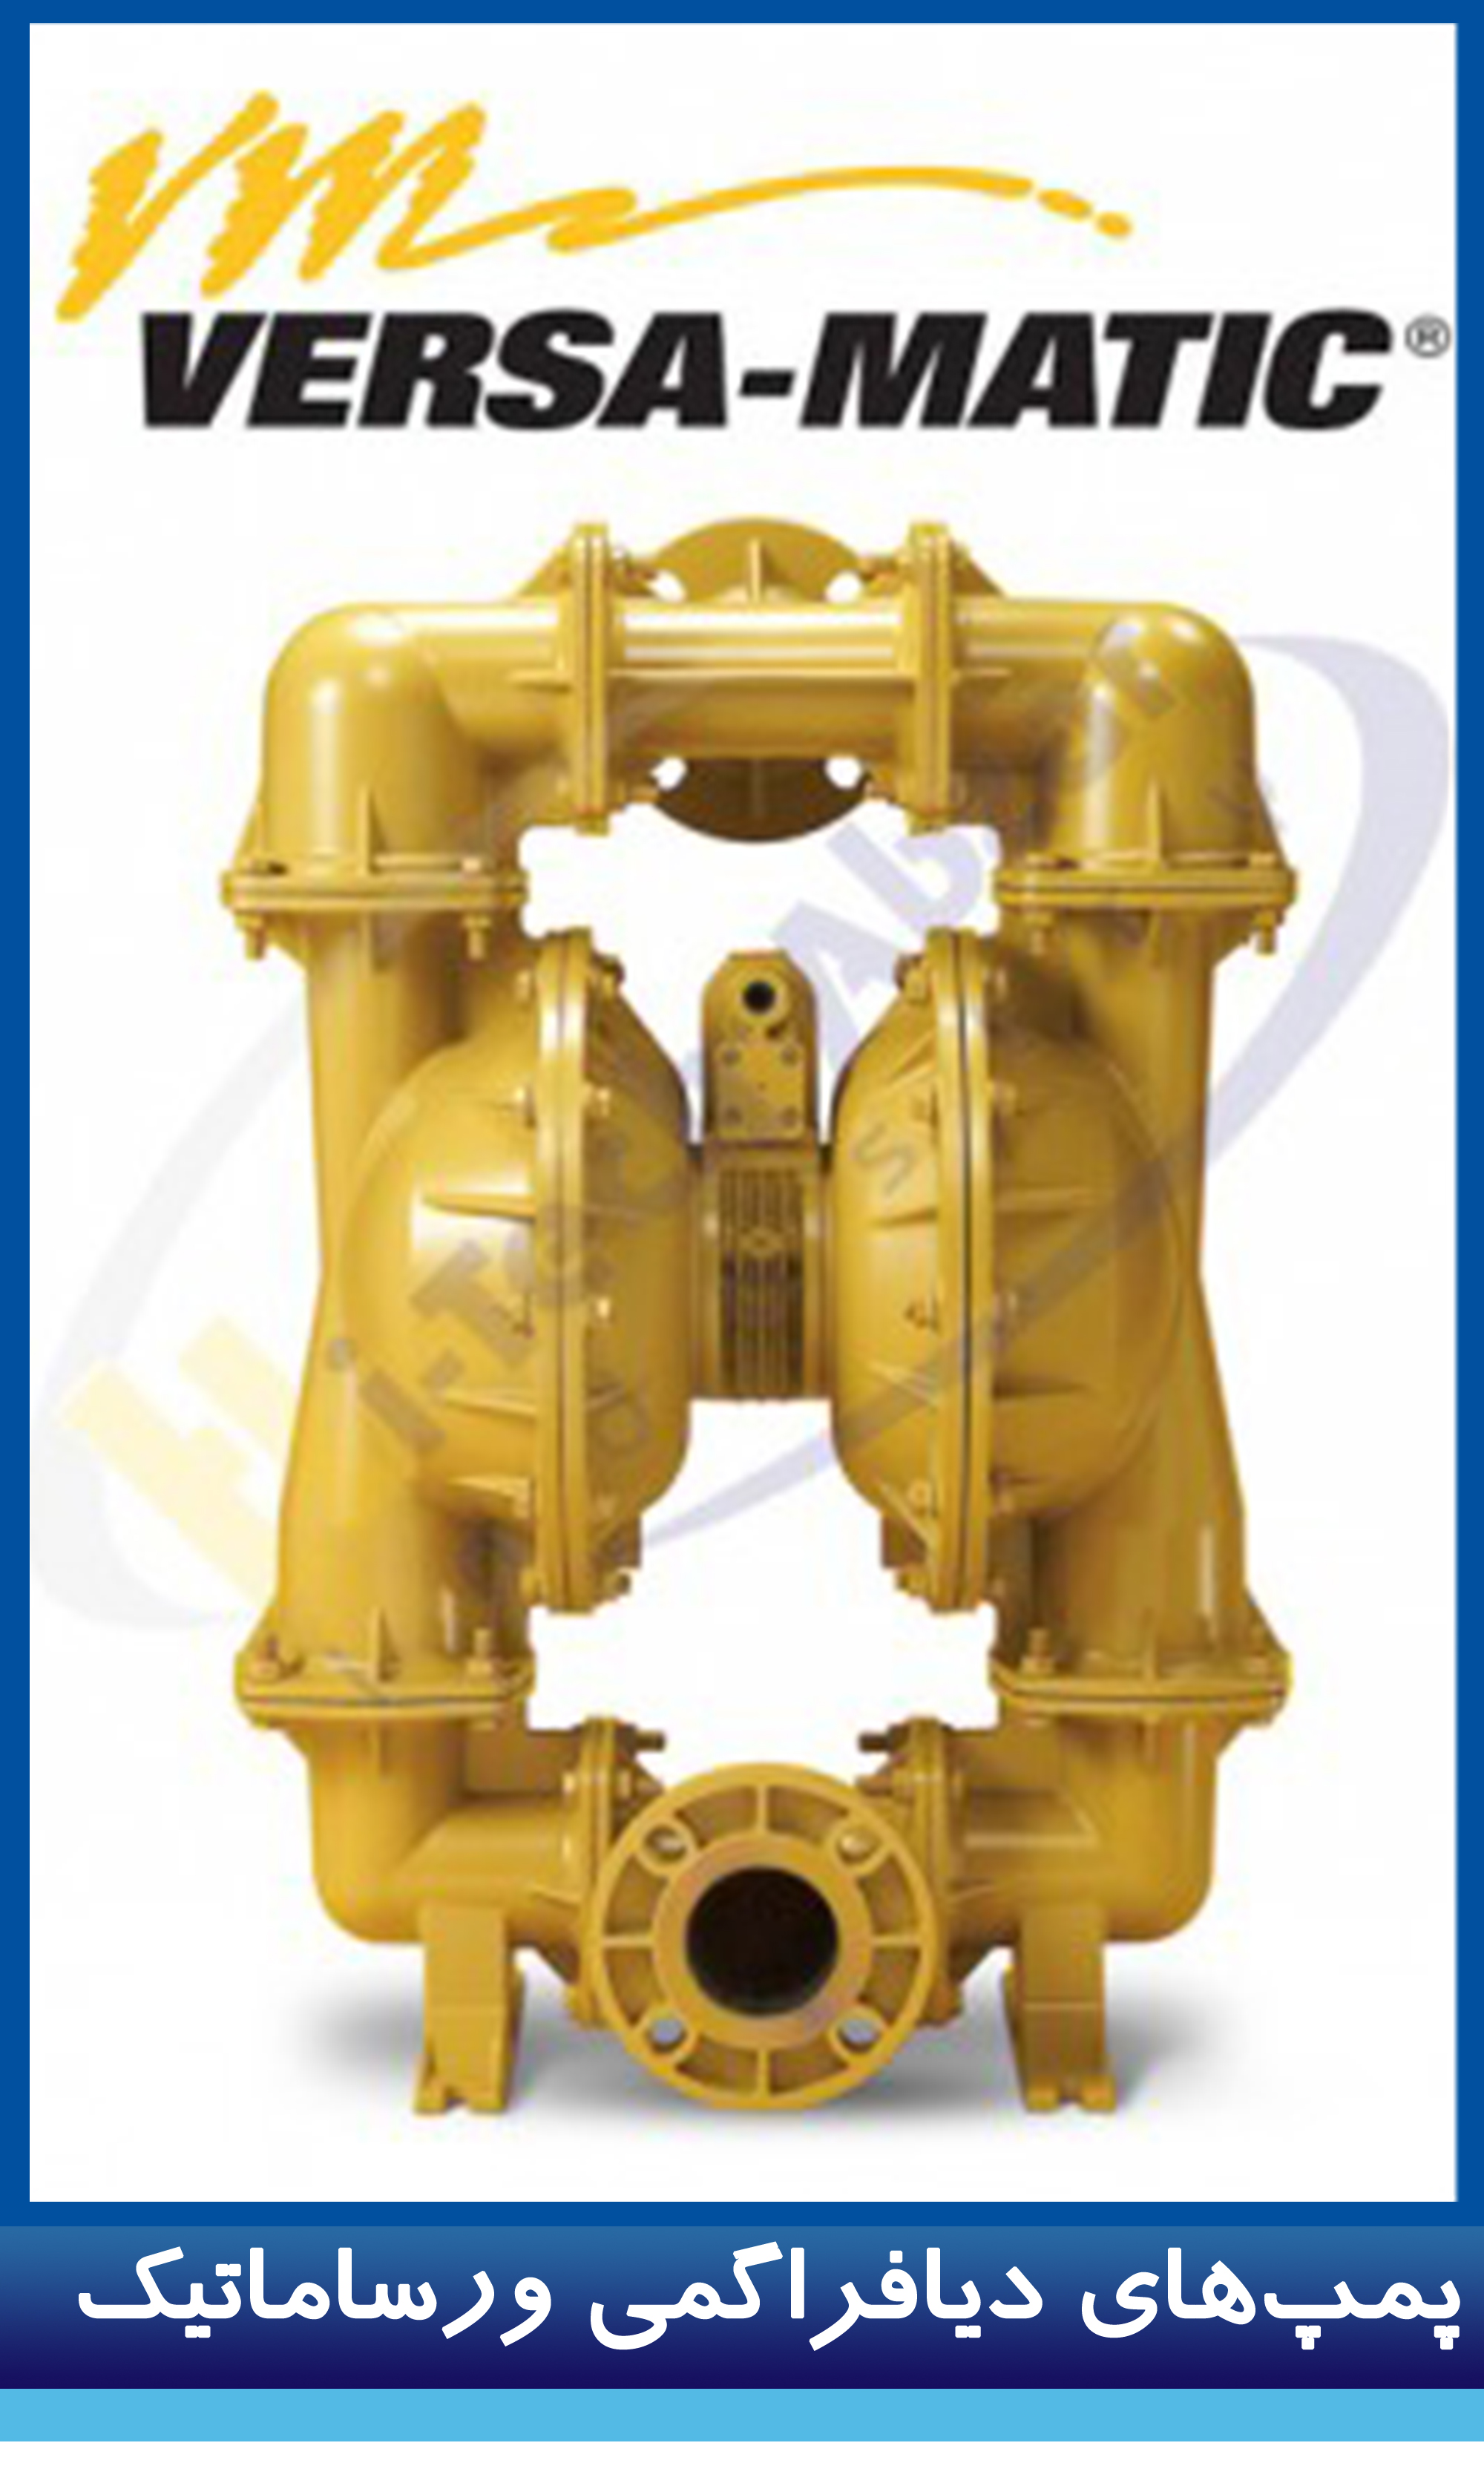 versamatic_diaphragm_pump_400